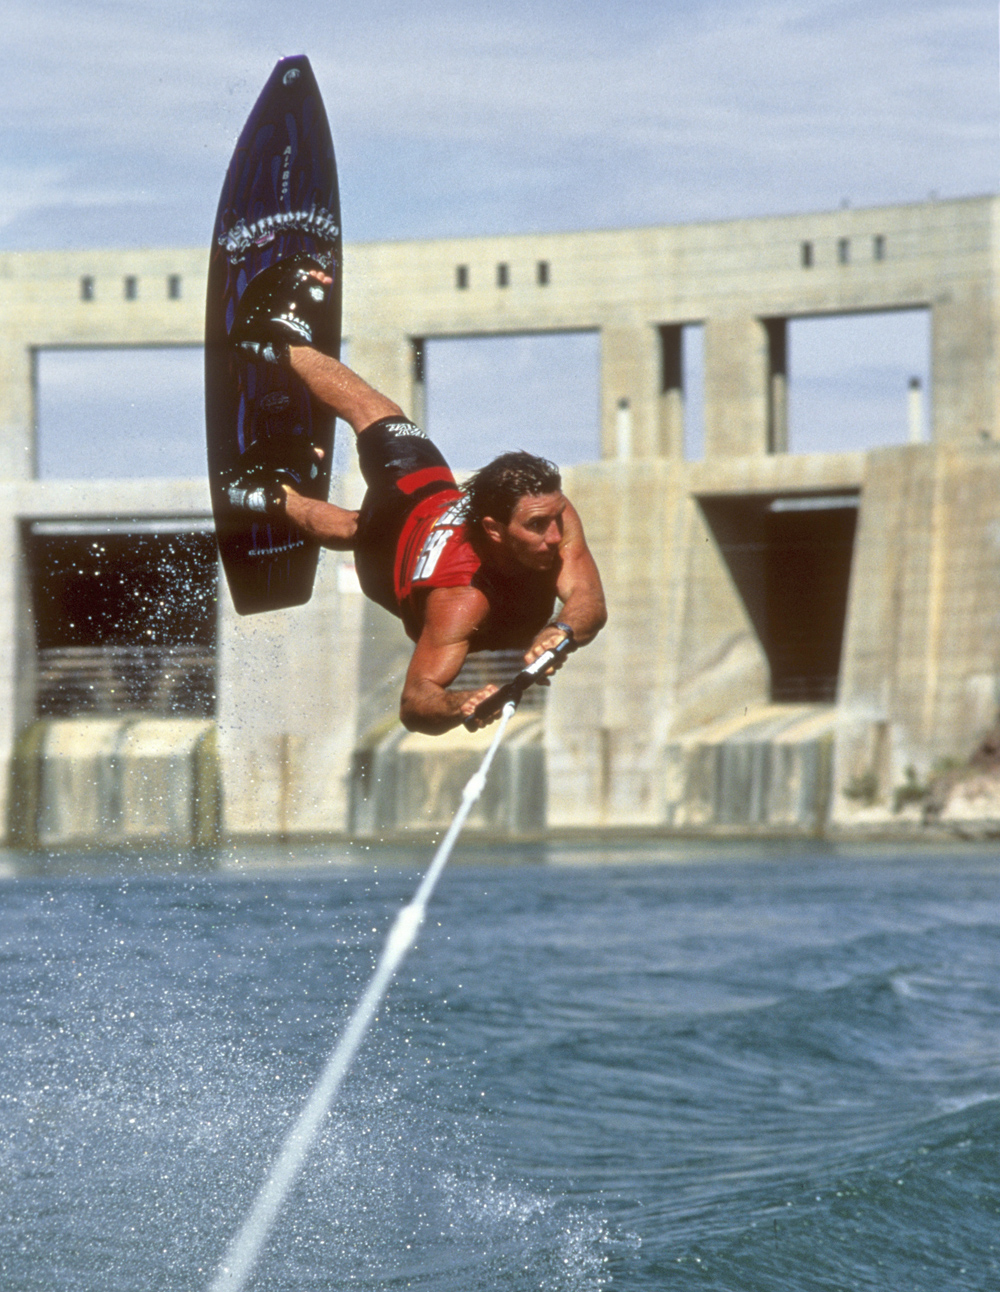 Gutsy air chair flip over dock mike murphy on hydrofoil waterskiing - Adventures Water Skiing Hydrofoiling 1994 Ron Stack Wakeboard